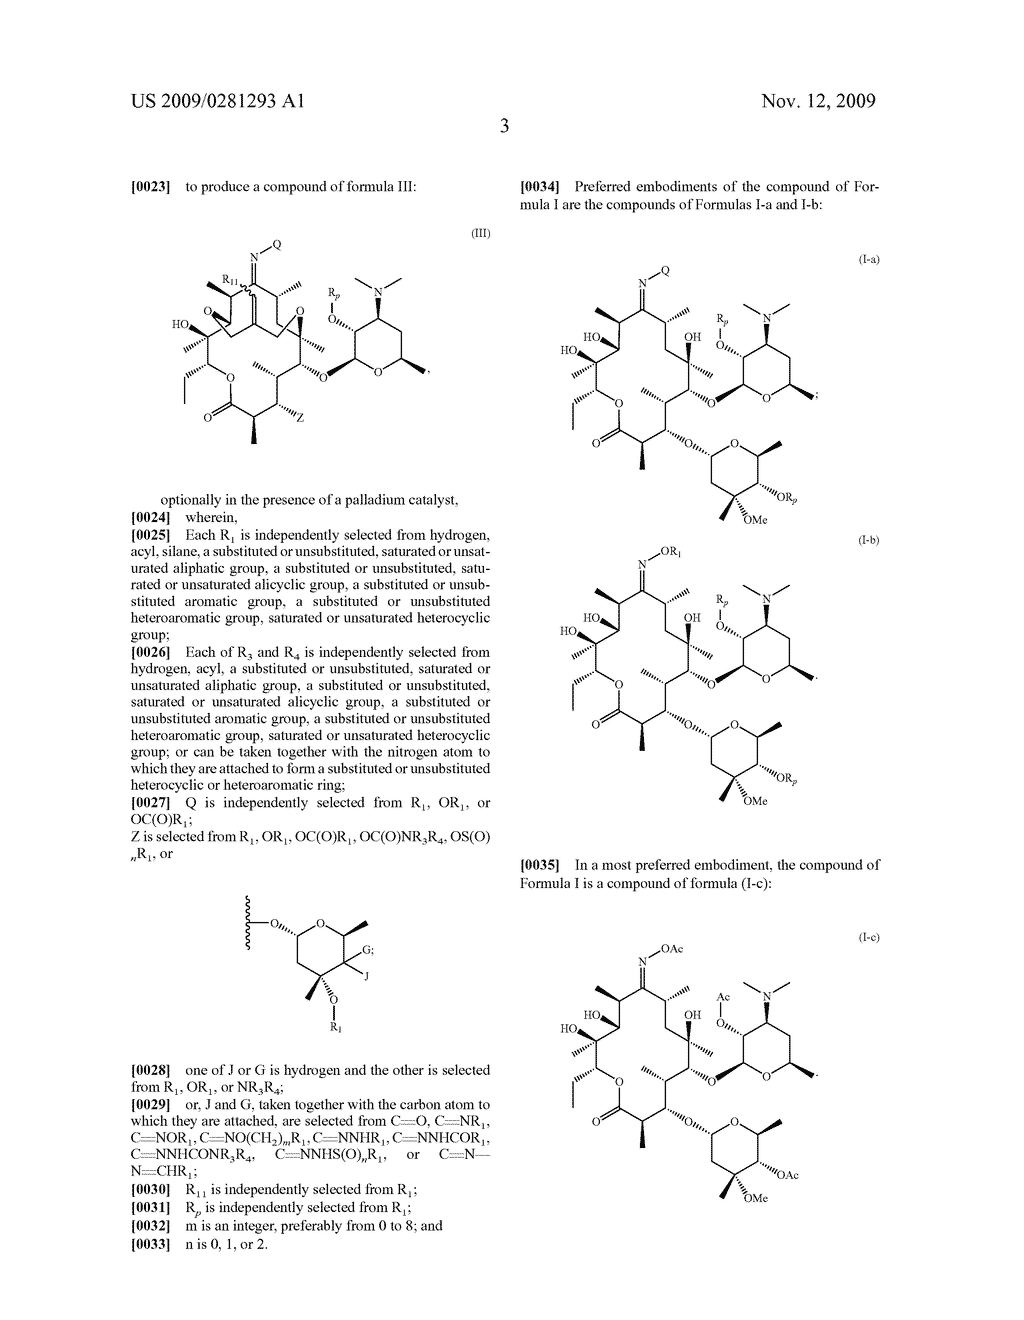 PROCESSES FOR THE PREPARATION OF 2 FLUORO 6-11 BICYCLIC ERYTHROMYCIN DERIVATIVES - diagram, schematic, and image 04